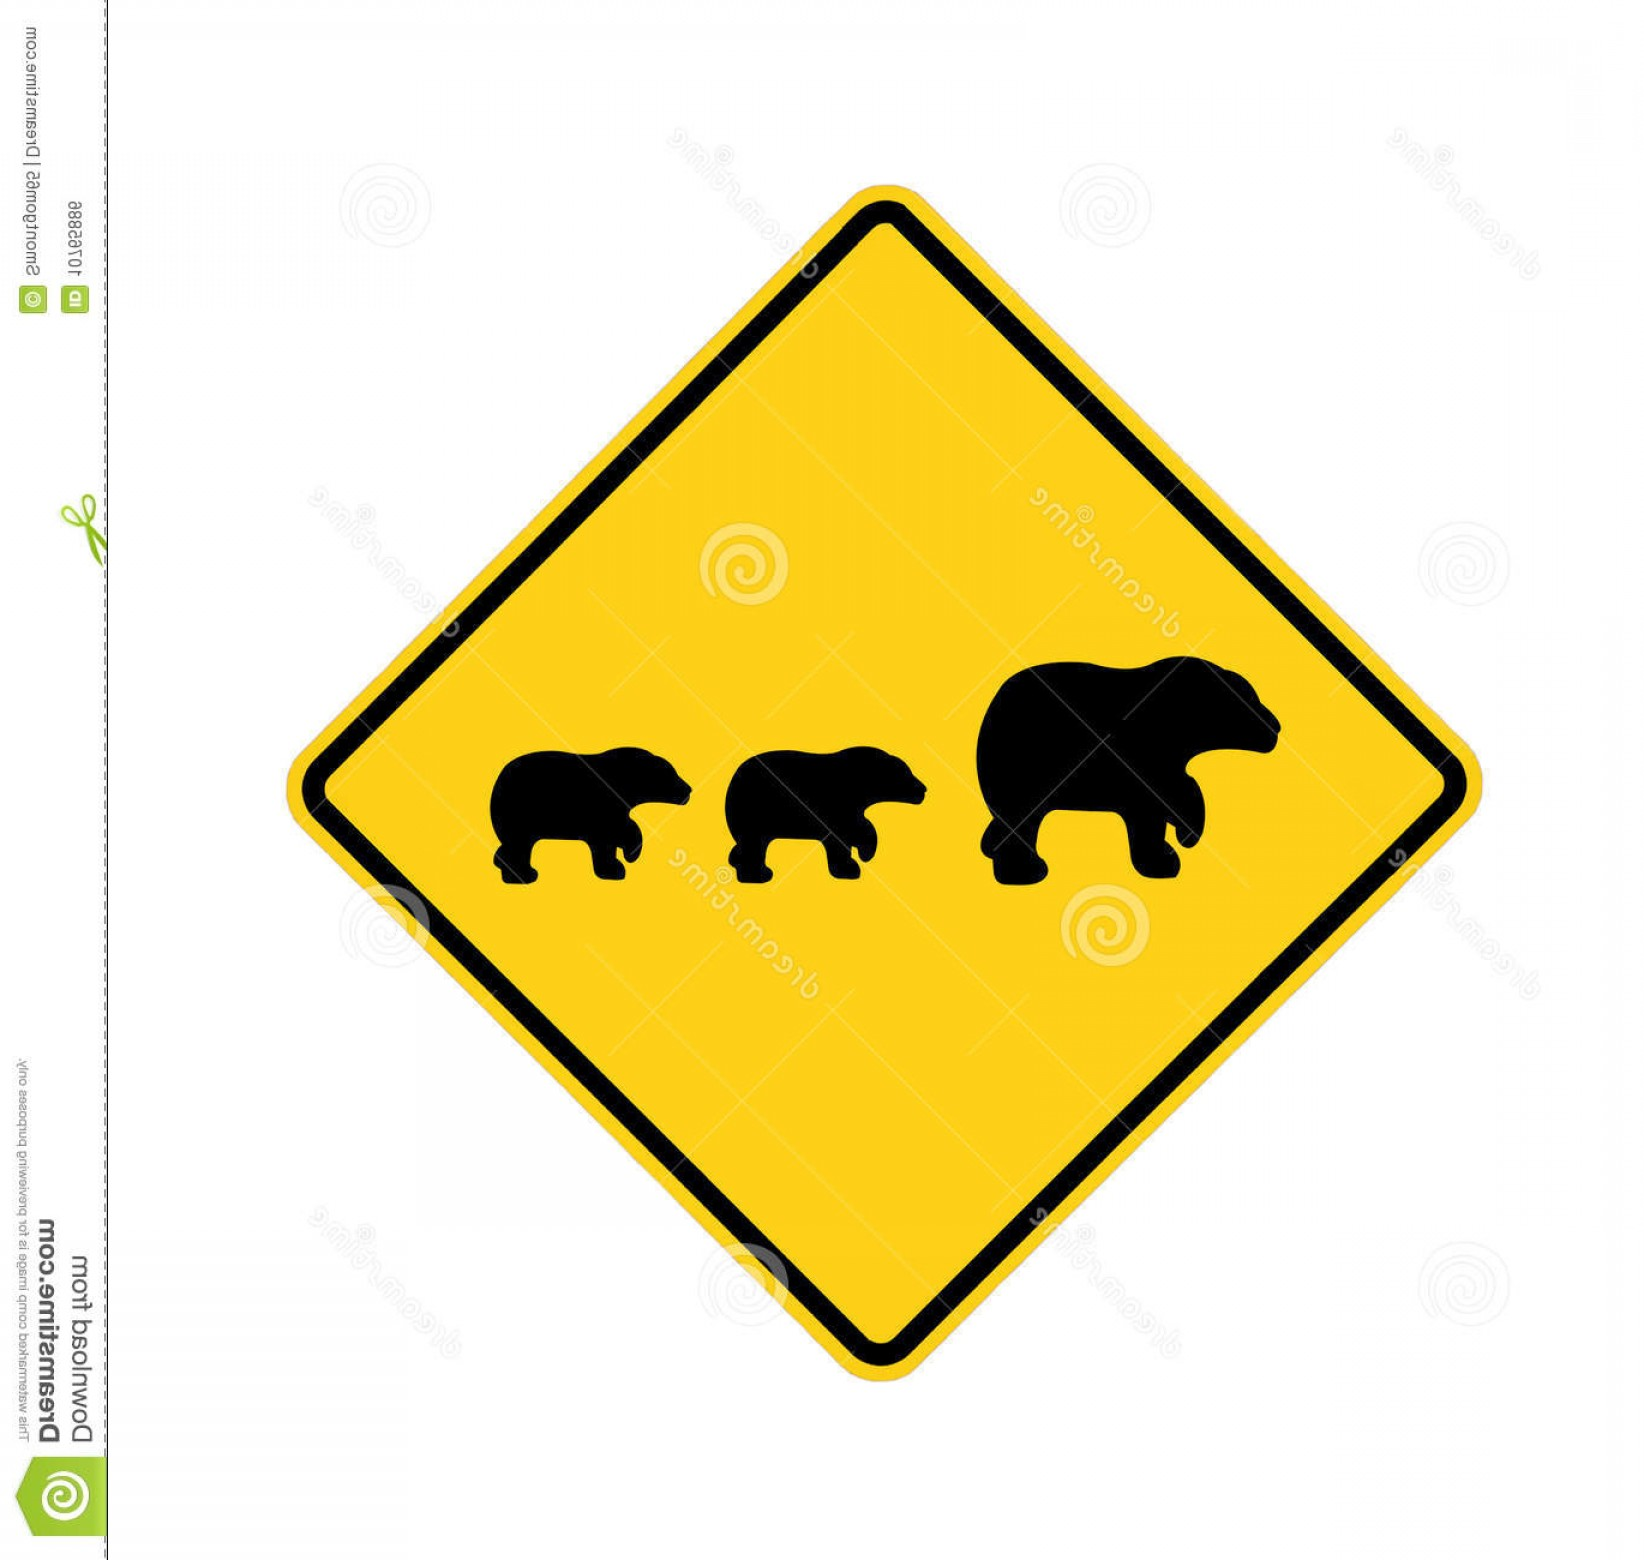 Road Sign Silhouette Vector Bear: Royalty Free Stock Image Road Sign Bear Crossing Image